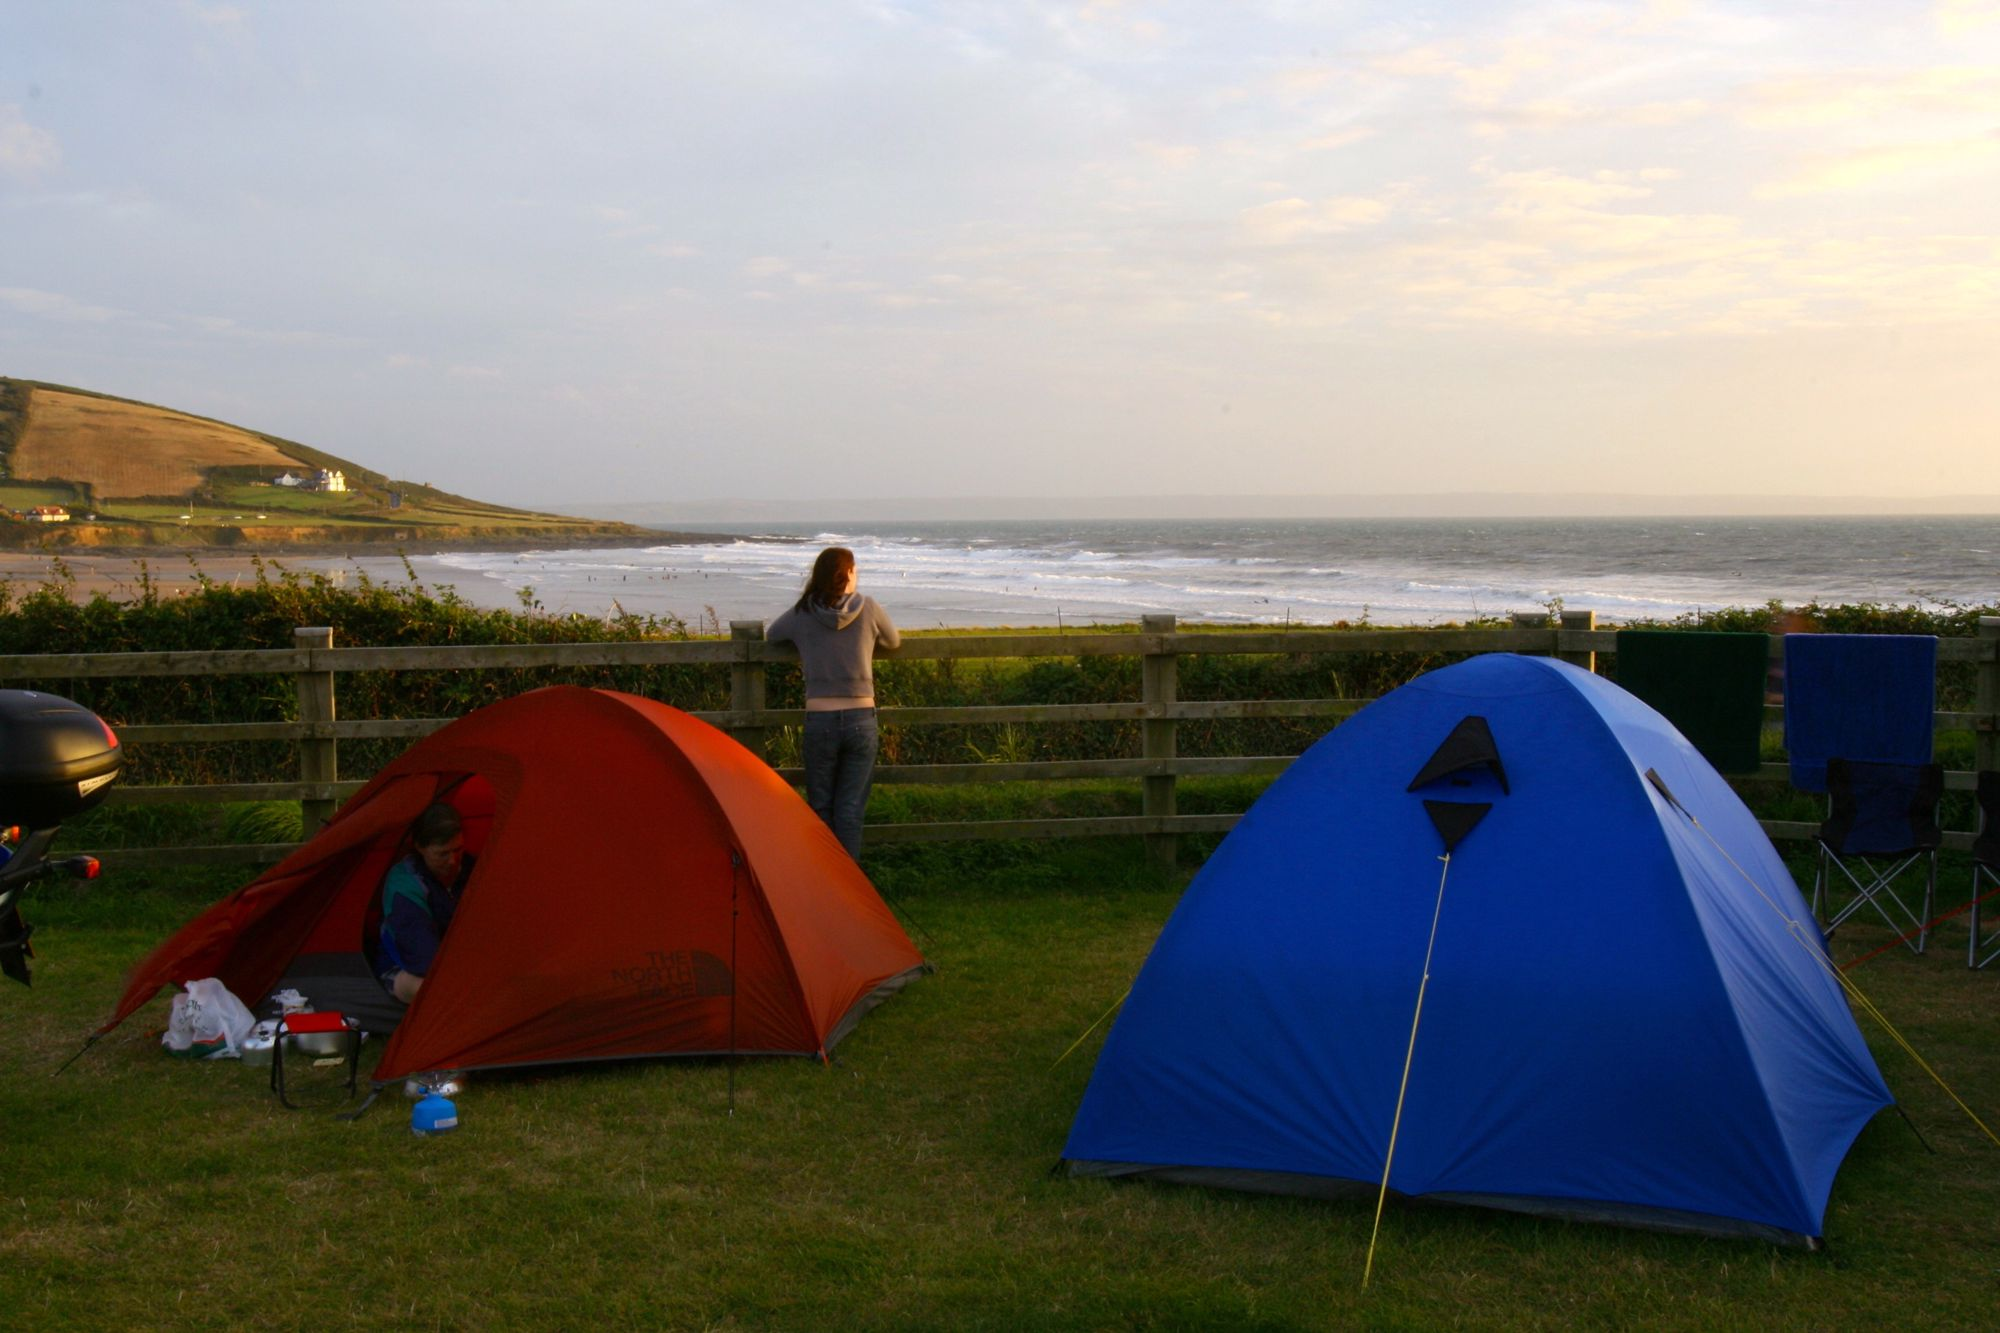 Croyde Camping | Best campsites in Croyde, Devon